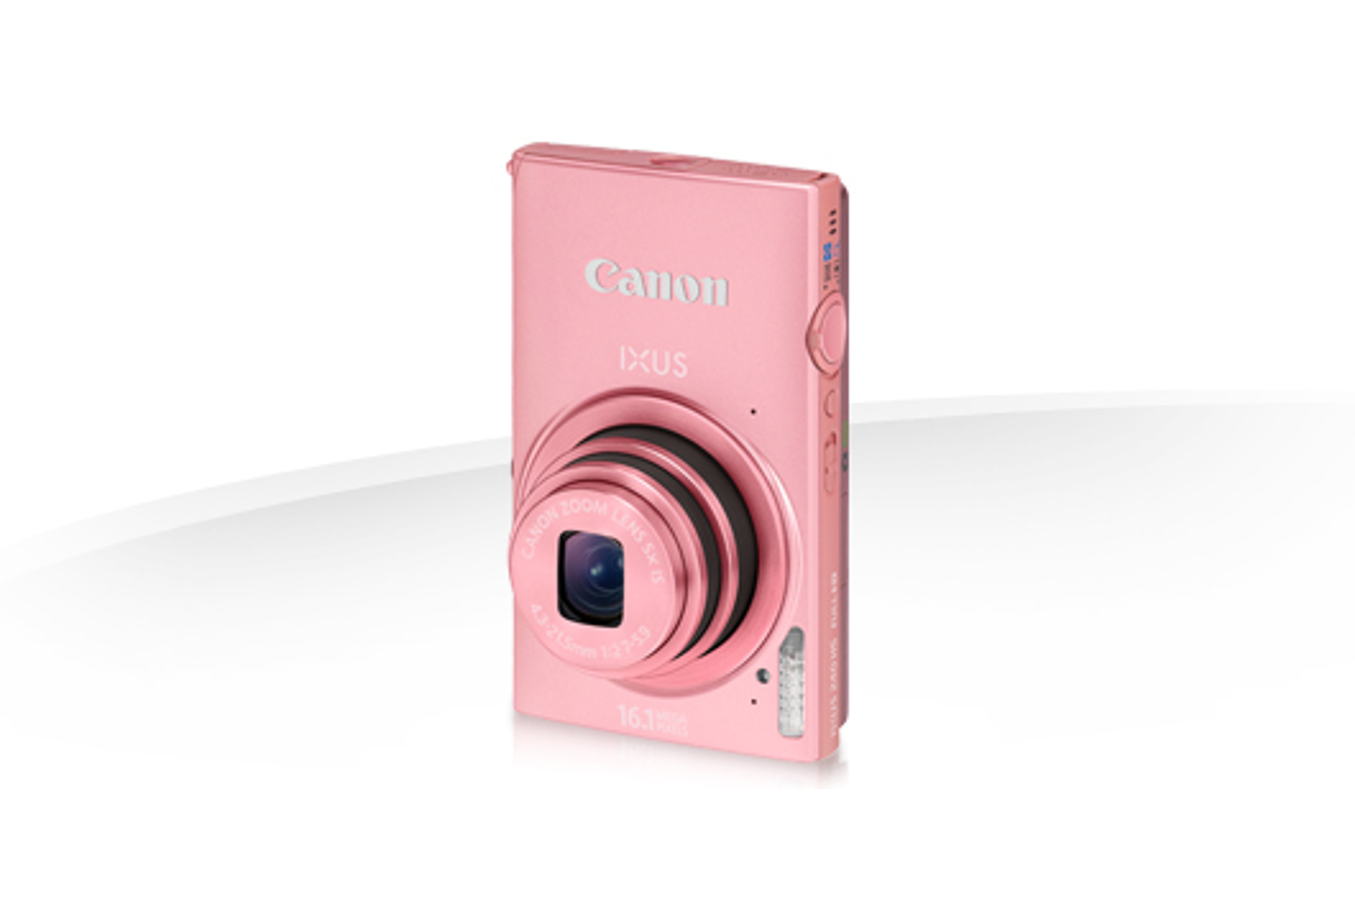 appareil photo compact canon ixus 240hs pink 1339621 darty. Black Bedroom Furniture Sets. Home Design Ideas